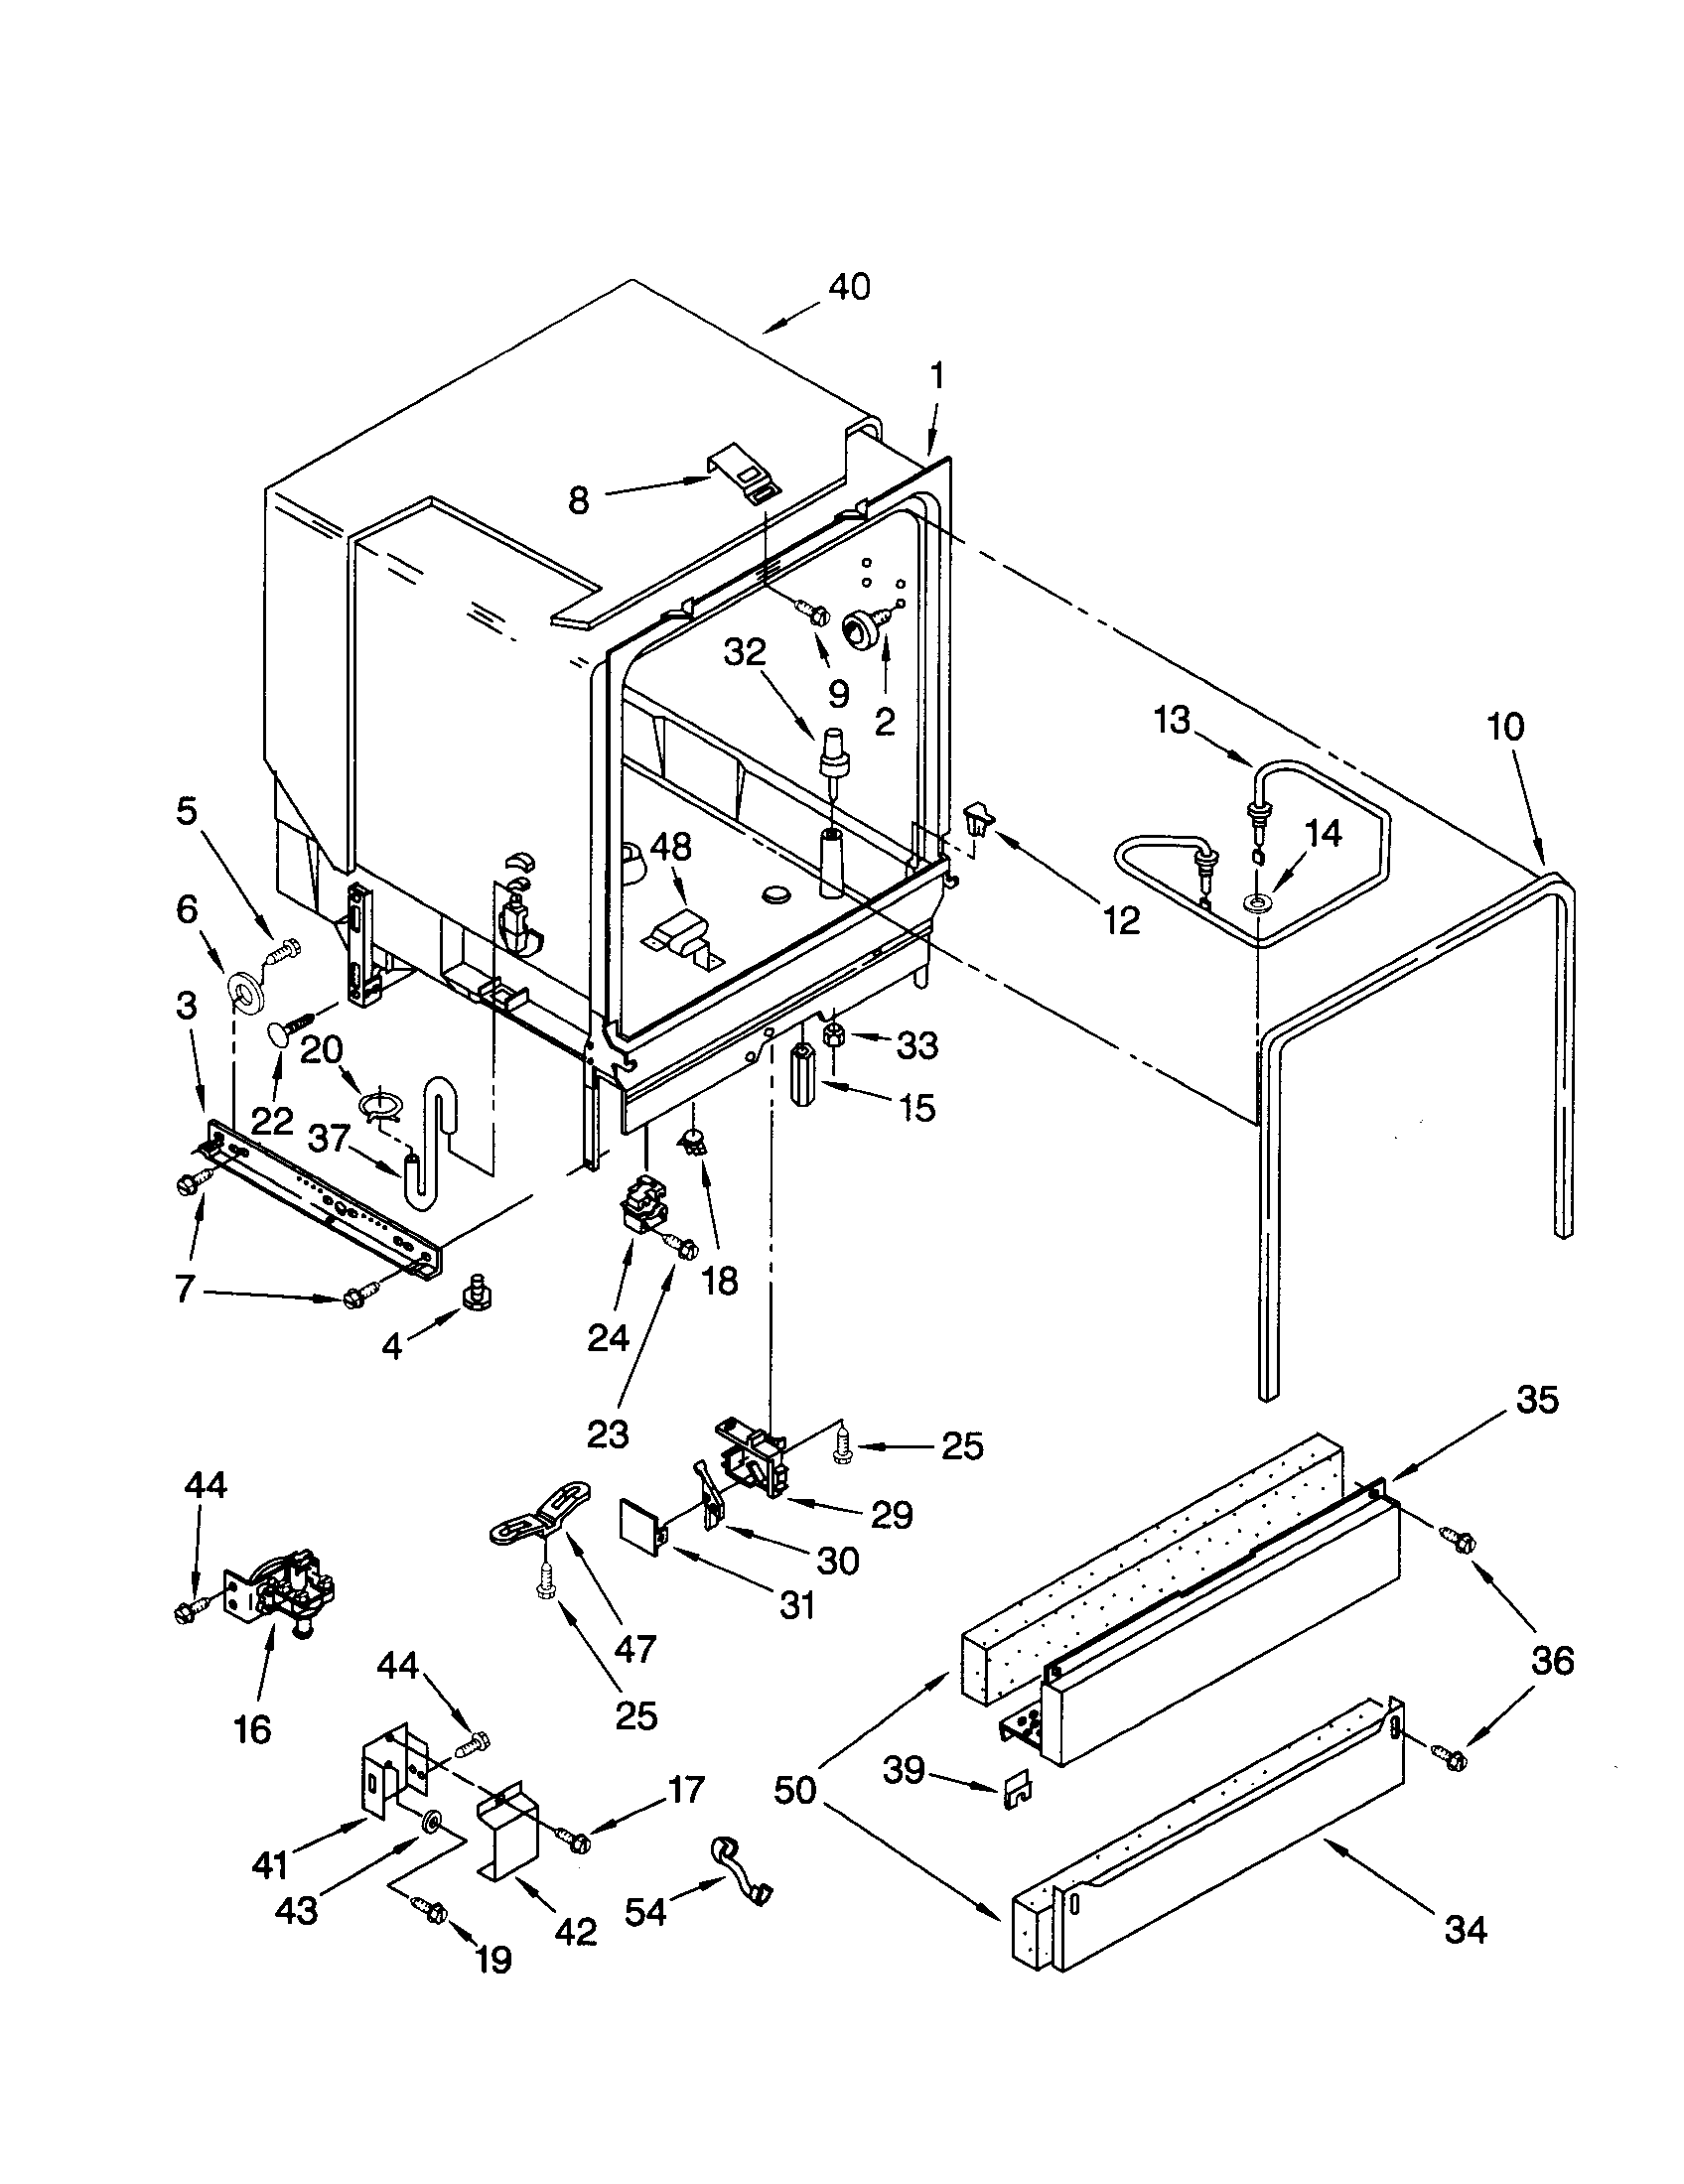 TUB ASSEMBLY Diagram & Parts List for Model 66515701891